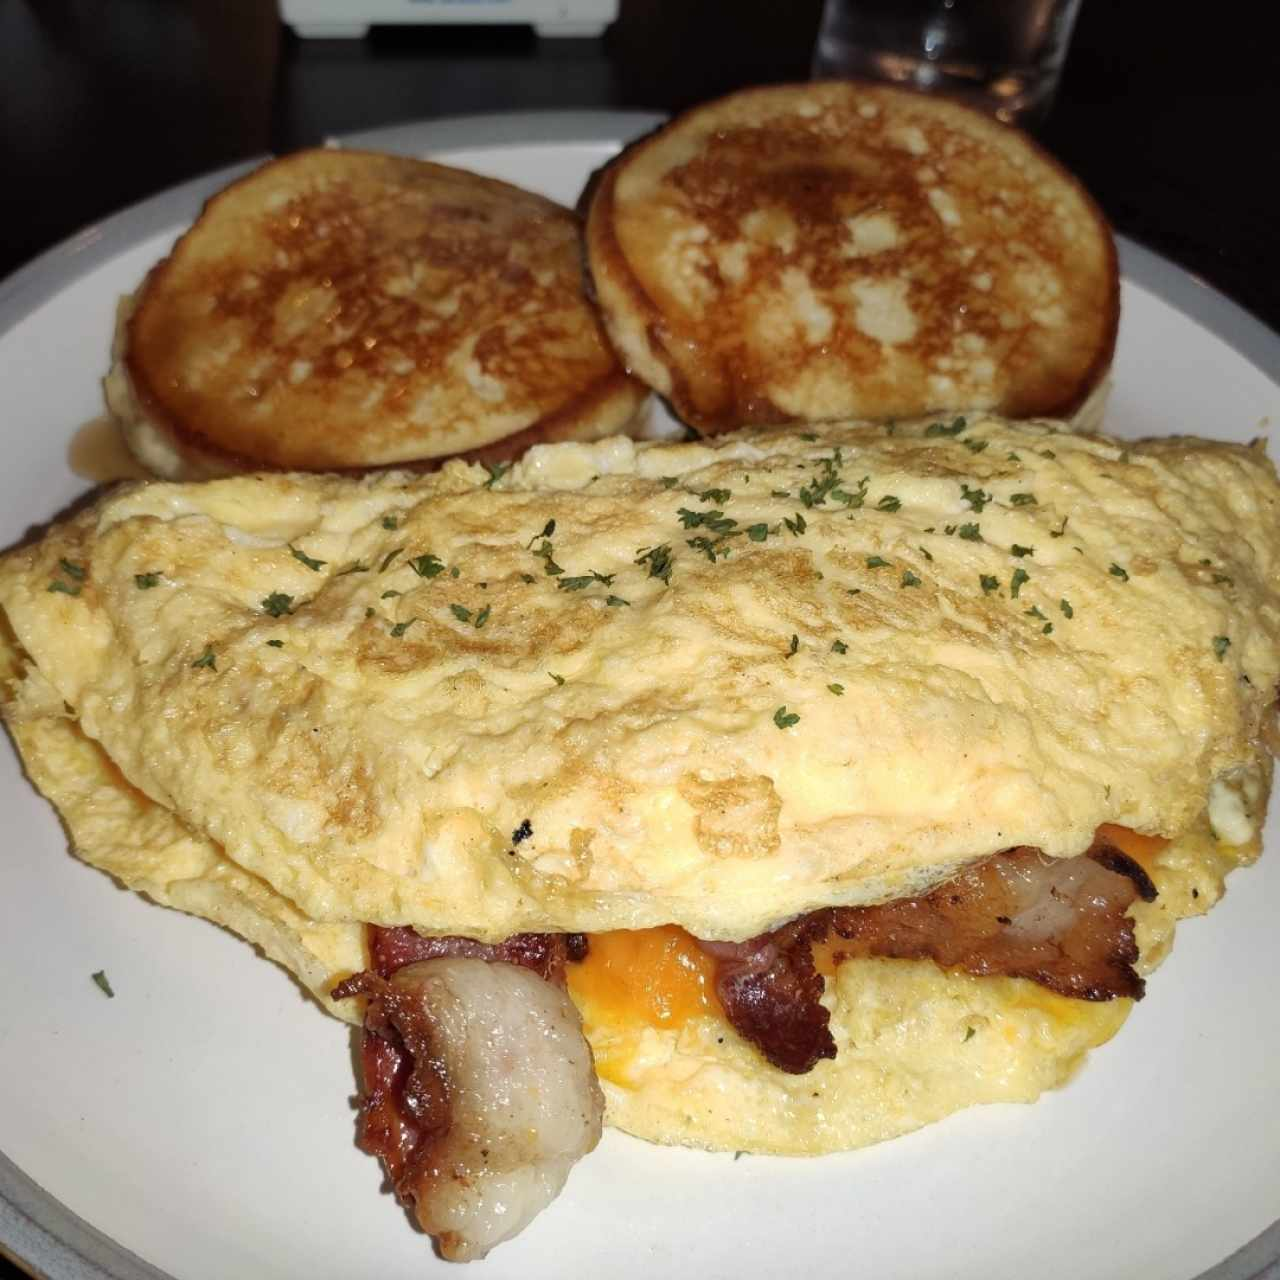 Bacon/Cheddar Omelette and Pancakes